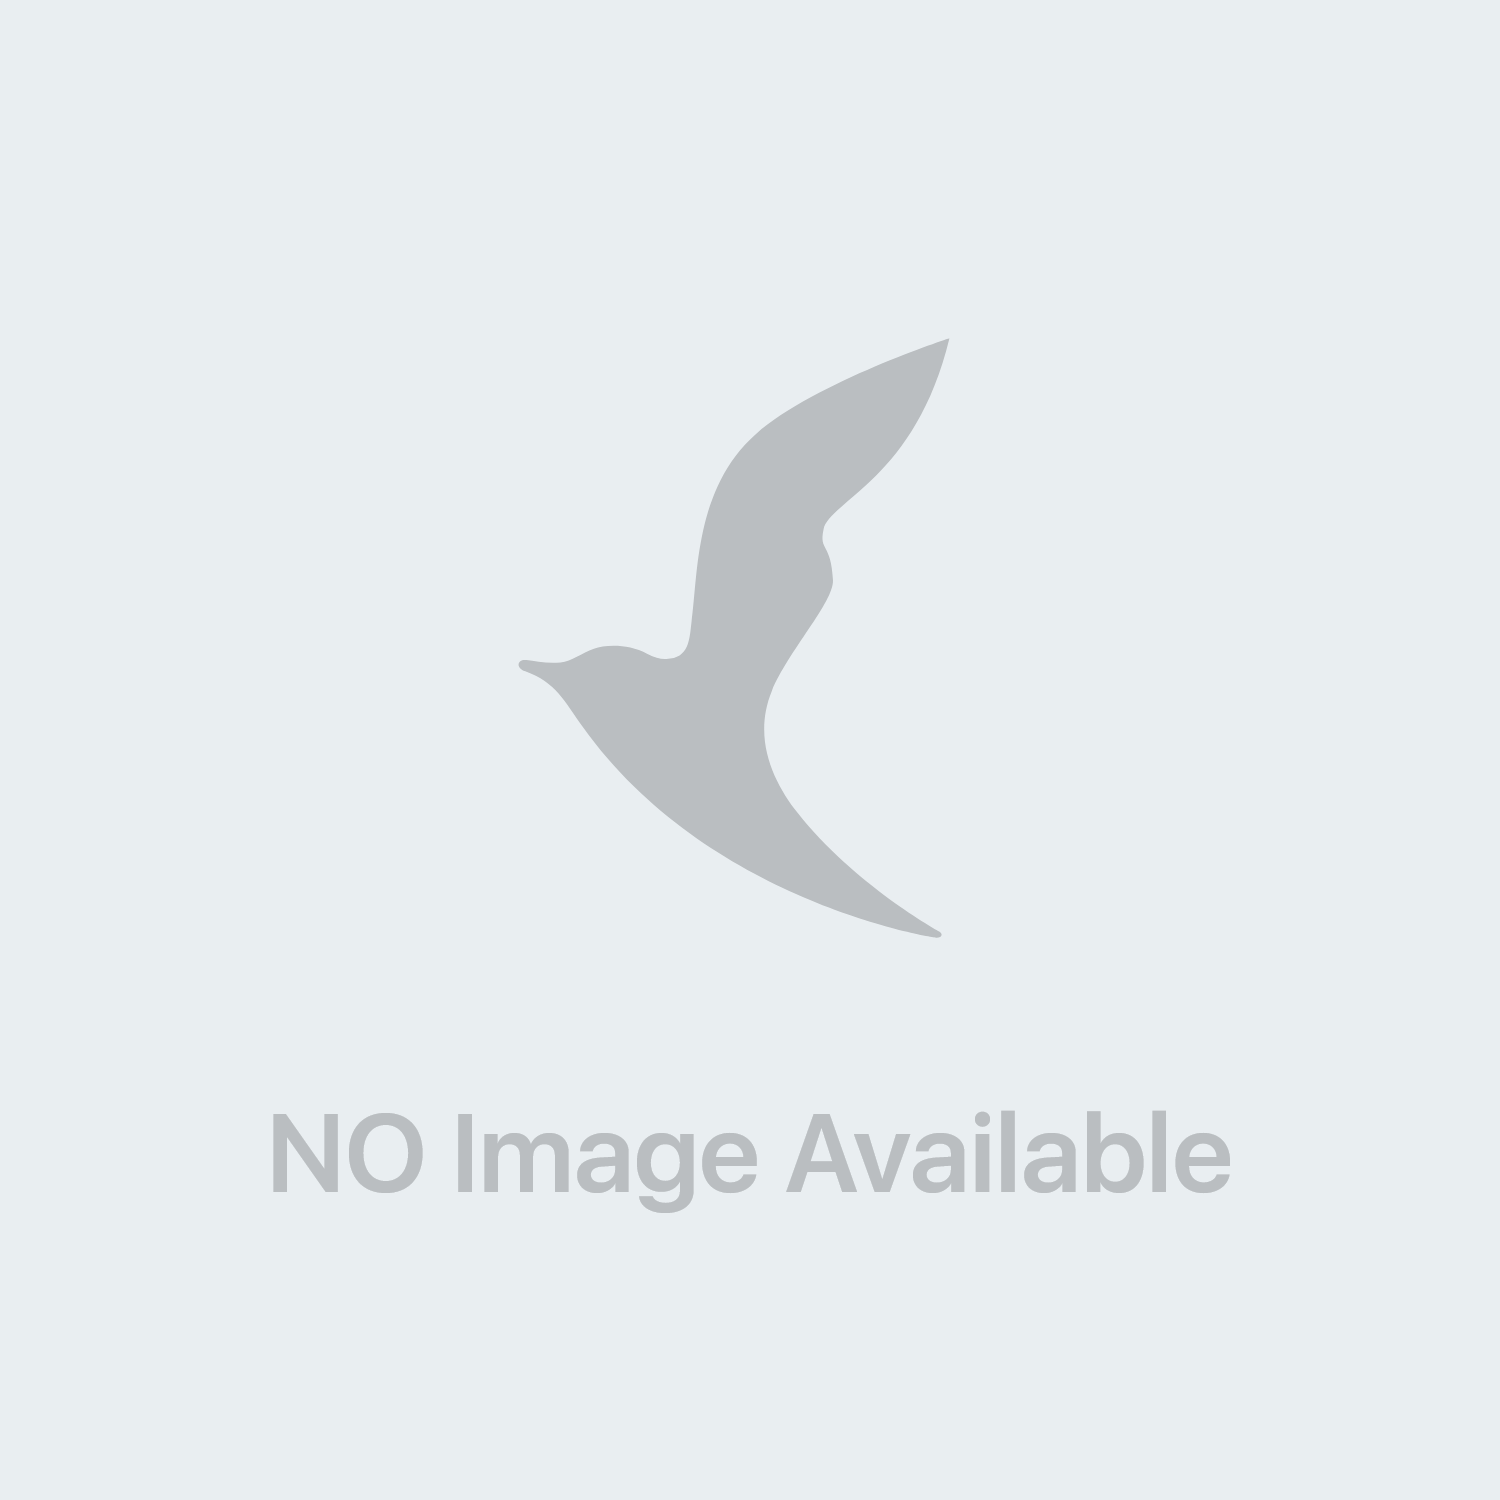 Dulcolax Supposte Adulti Lassative 10 mg Bisacodile 6 Supposte